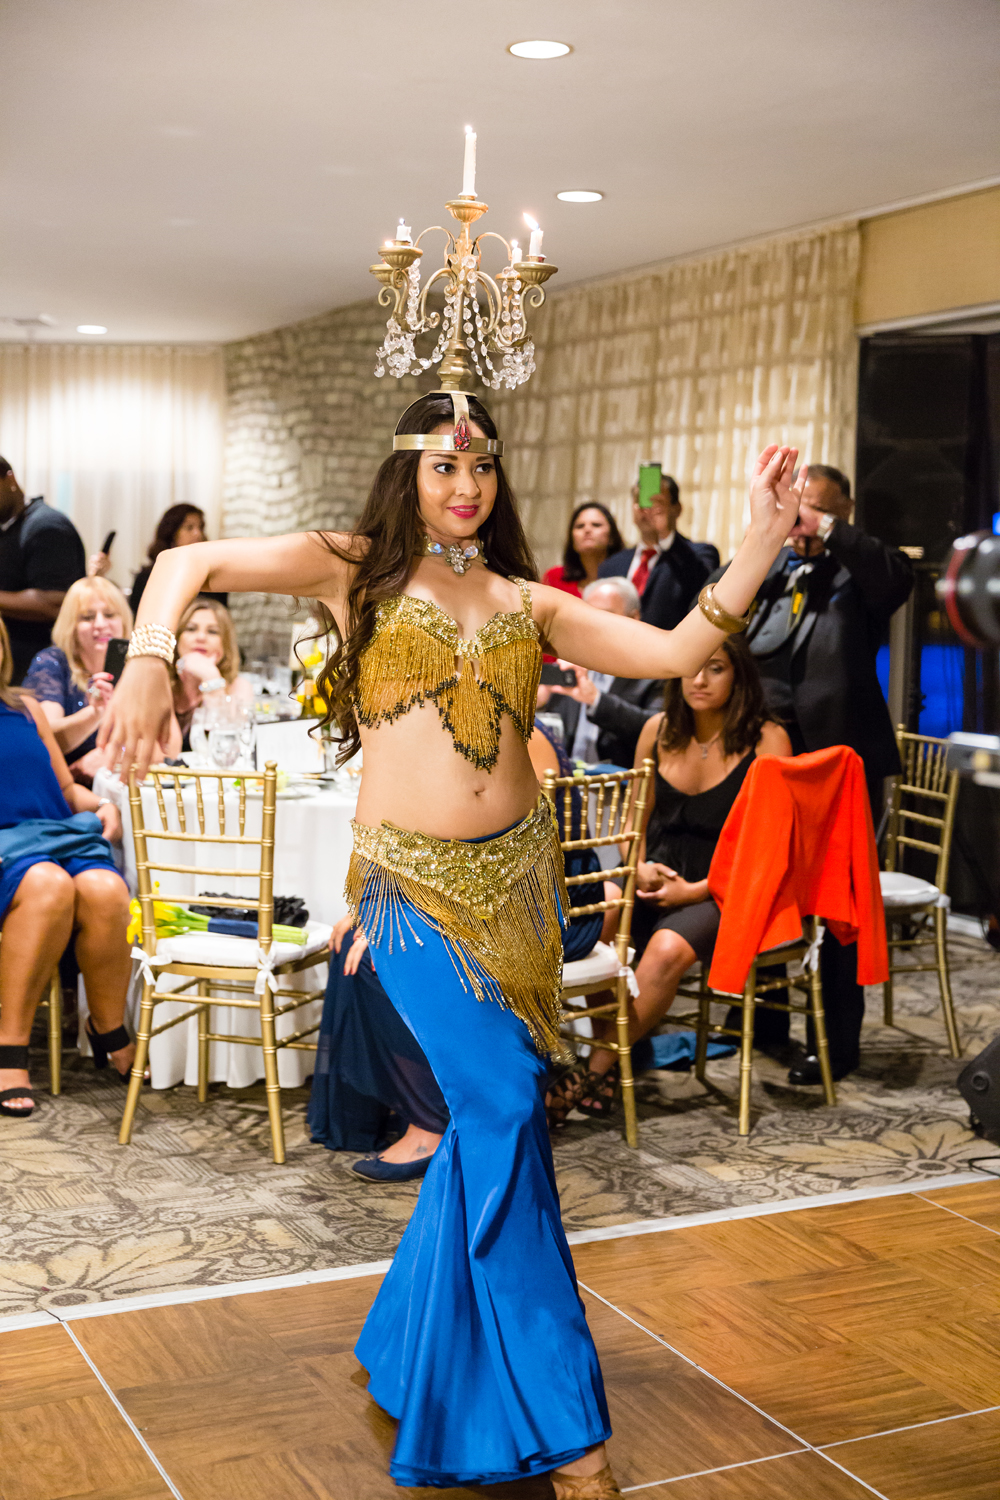 c4aed-lively-navy-yellow-harbor-wedding-belly-dancer-at-reception-candelbra-dance.jpg